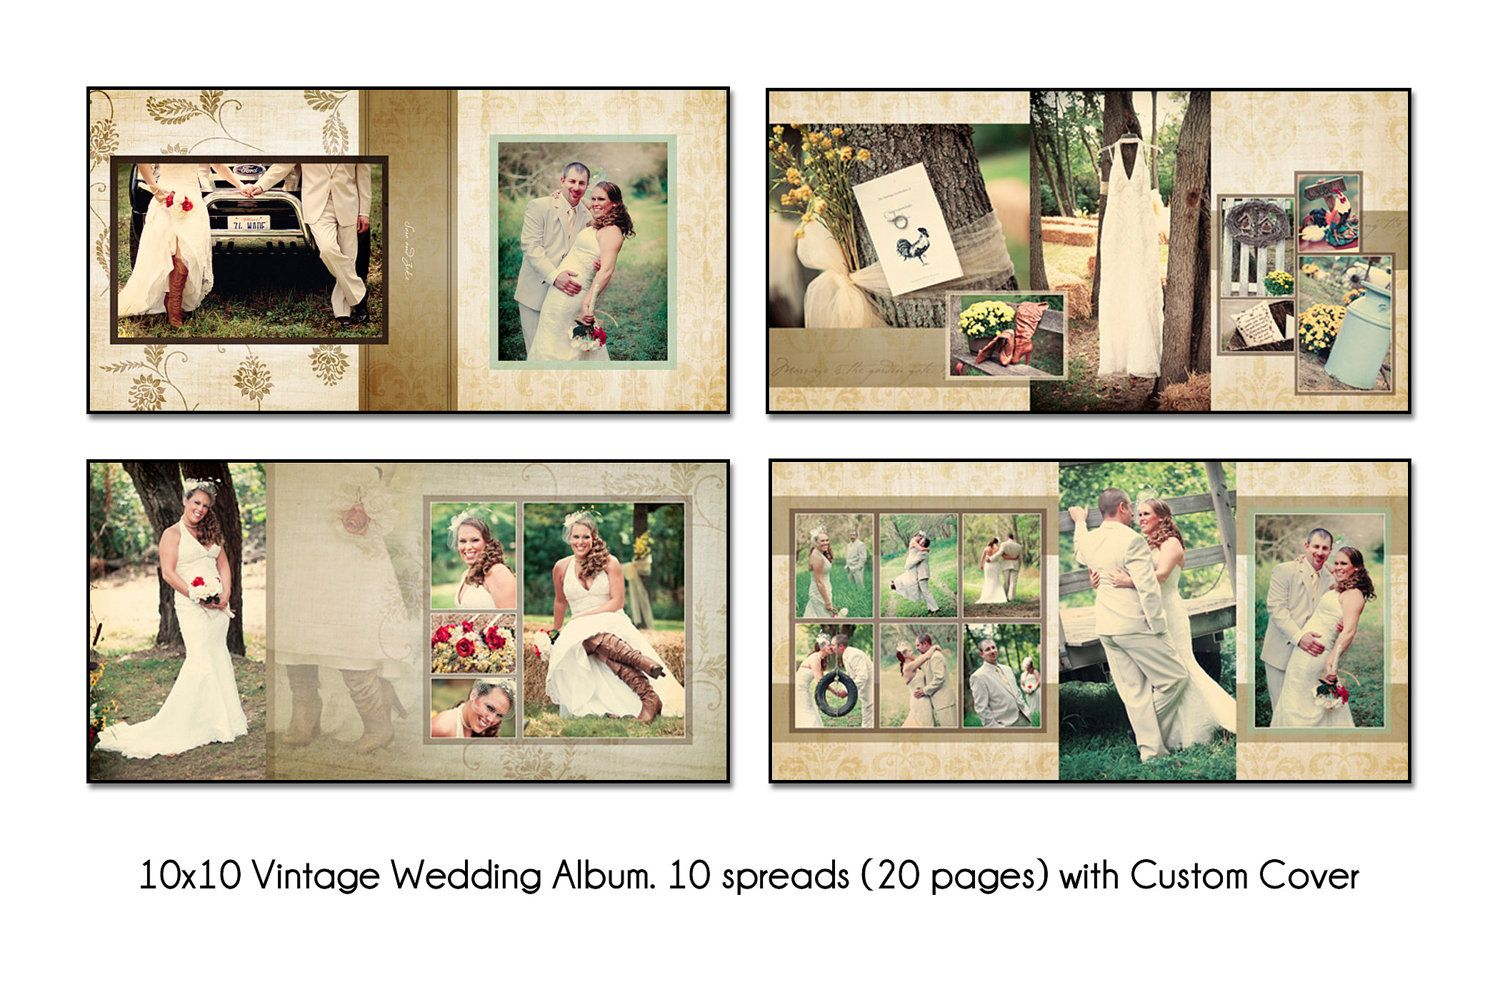 High Quality Free Wedding Album Templates At Www.mybridalpix.com. #wedding #album  #photobook #template #photography | Album Templates | Pinterest | Template,  Album And ... Ideas Free Album Templates